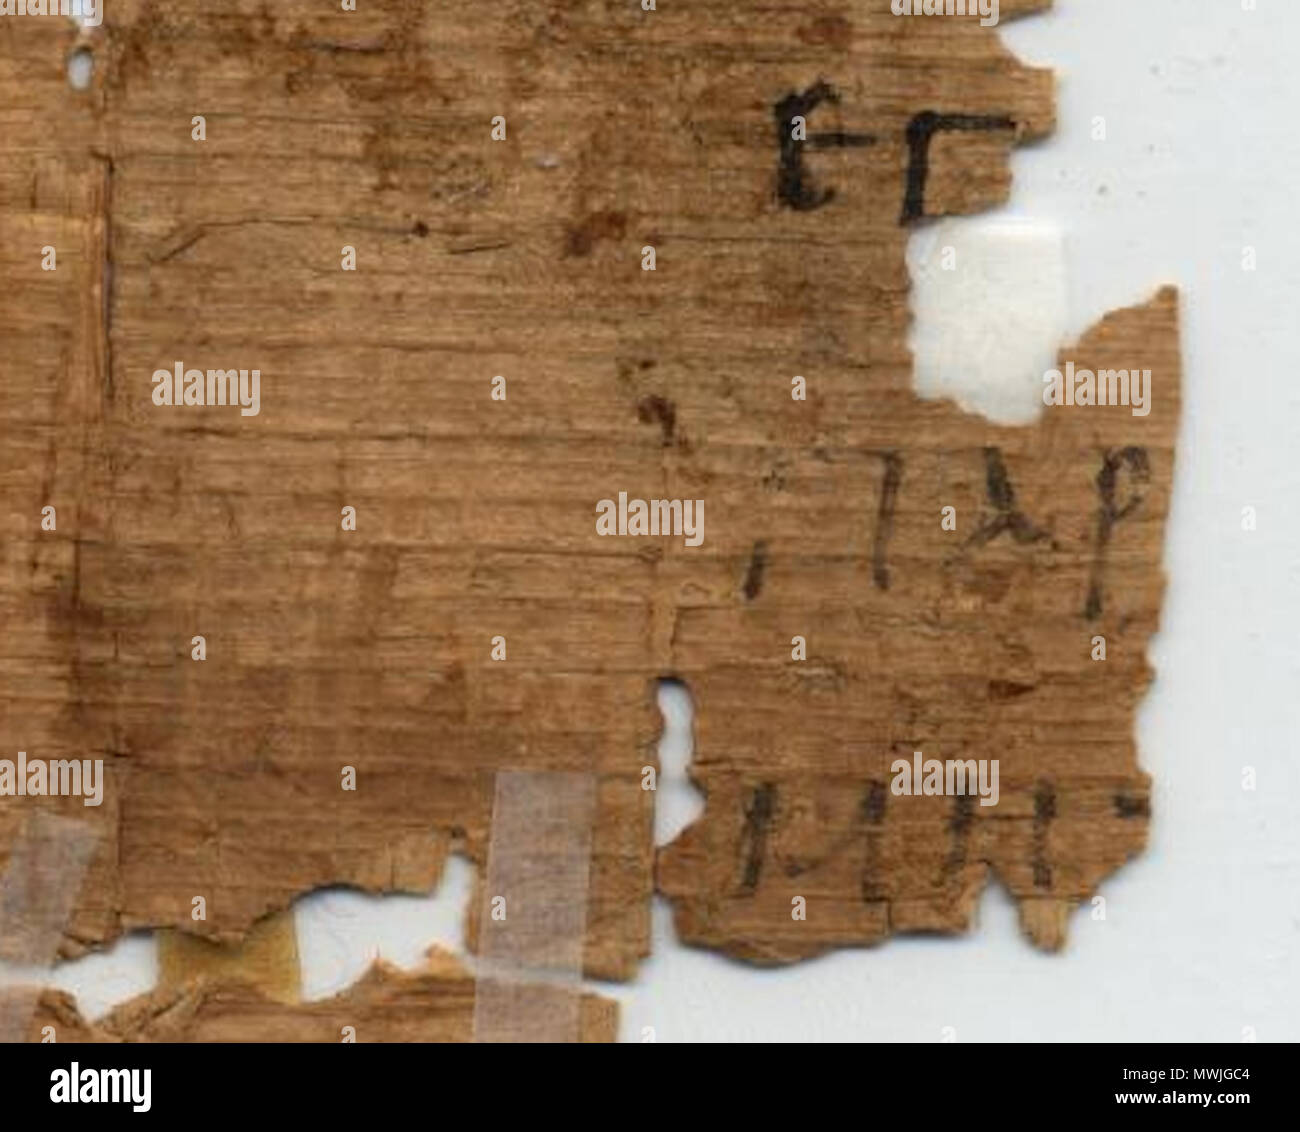 . English: Papyrus 1, flyleaf εγεν̣[ παρ[ μητ̣[ The text is very fragmentary, but probably says something about Jesus being born by Mary. 3rd century. Unknown 467 Papyrus 1 - flyleaf - Stock Image